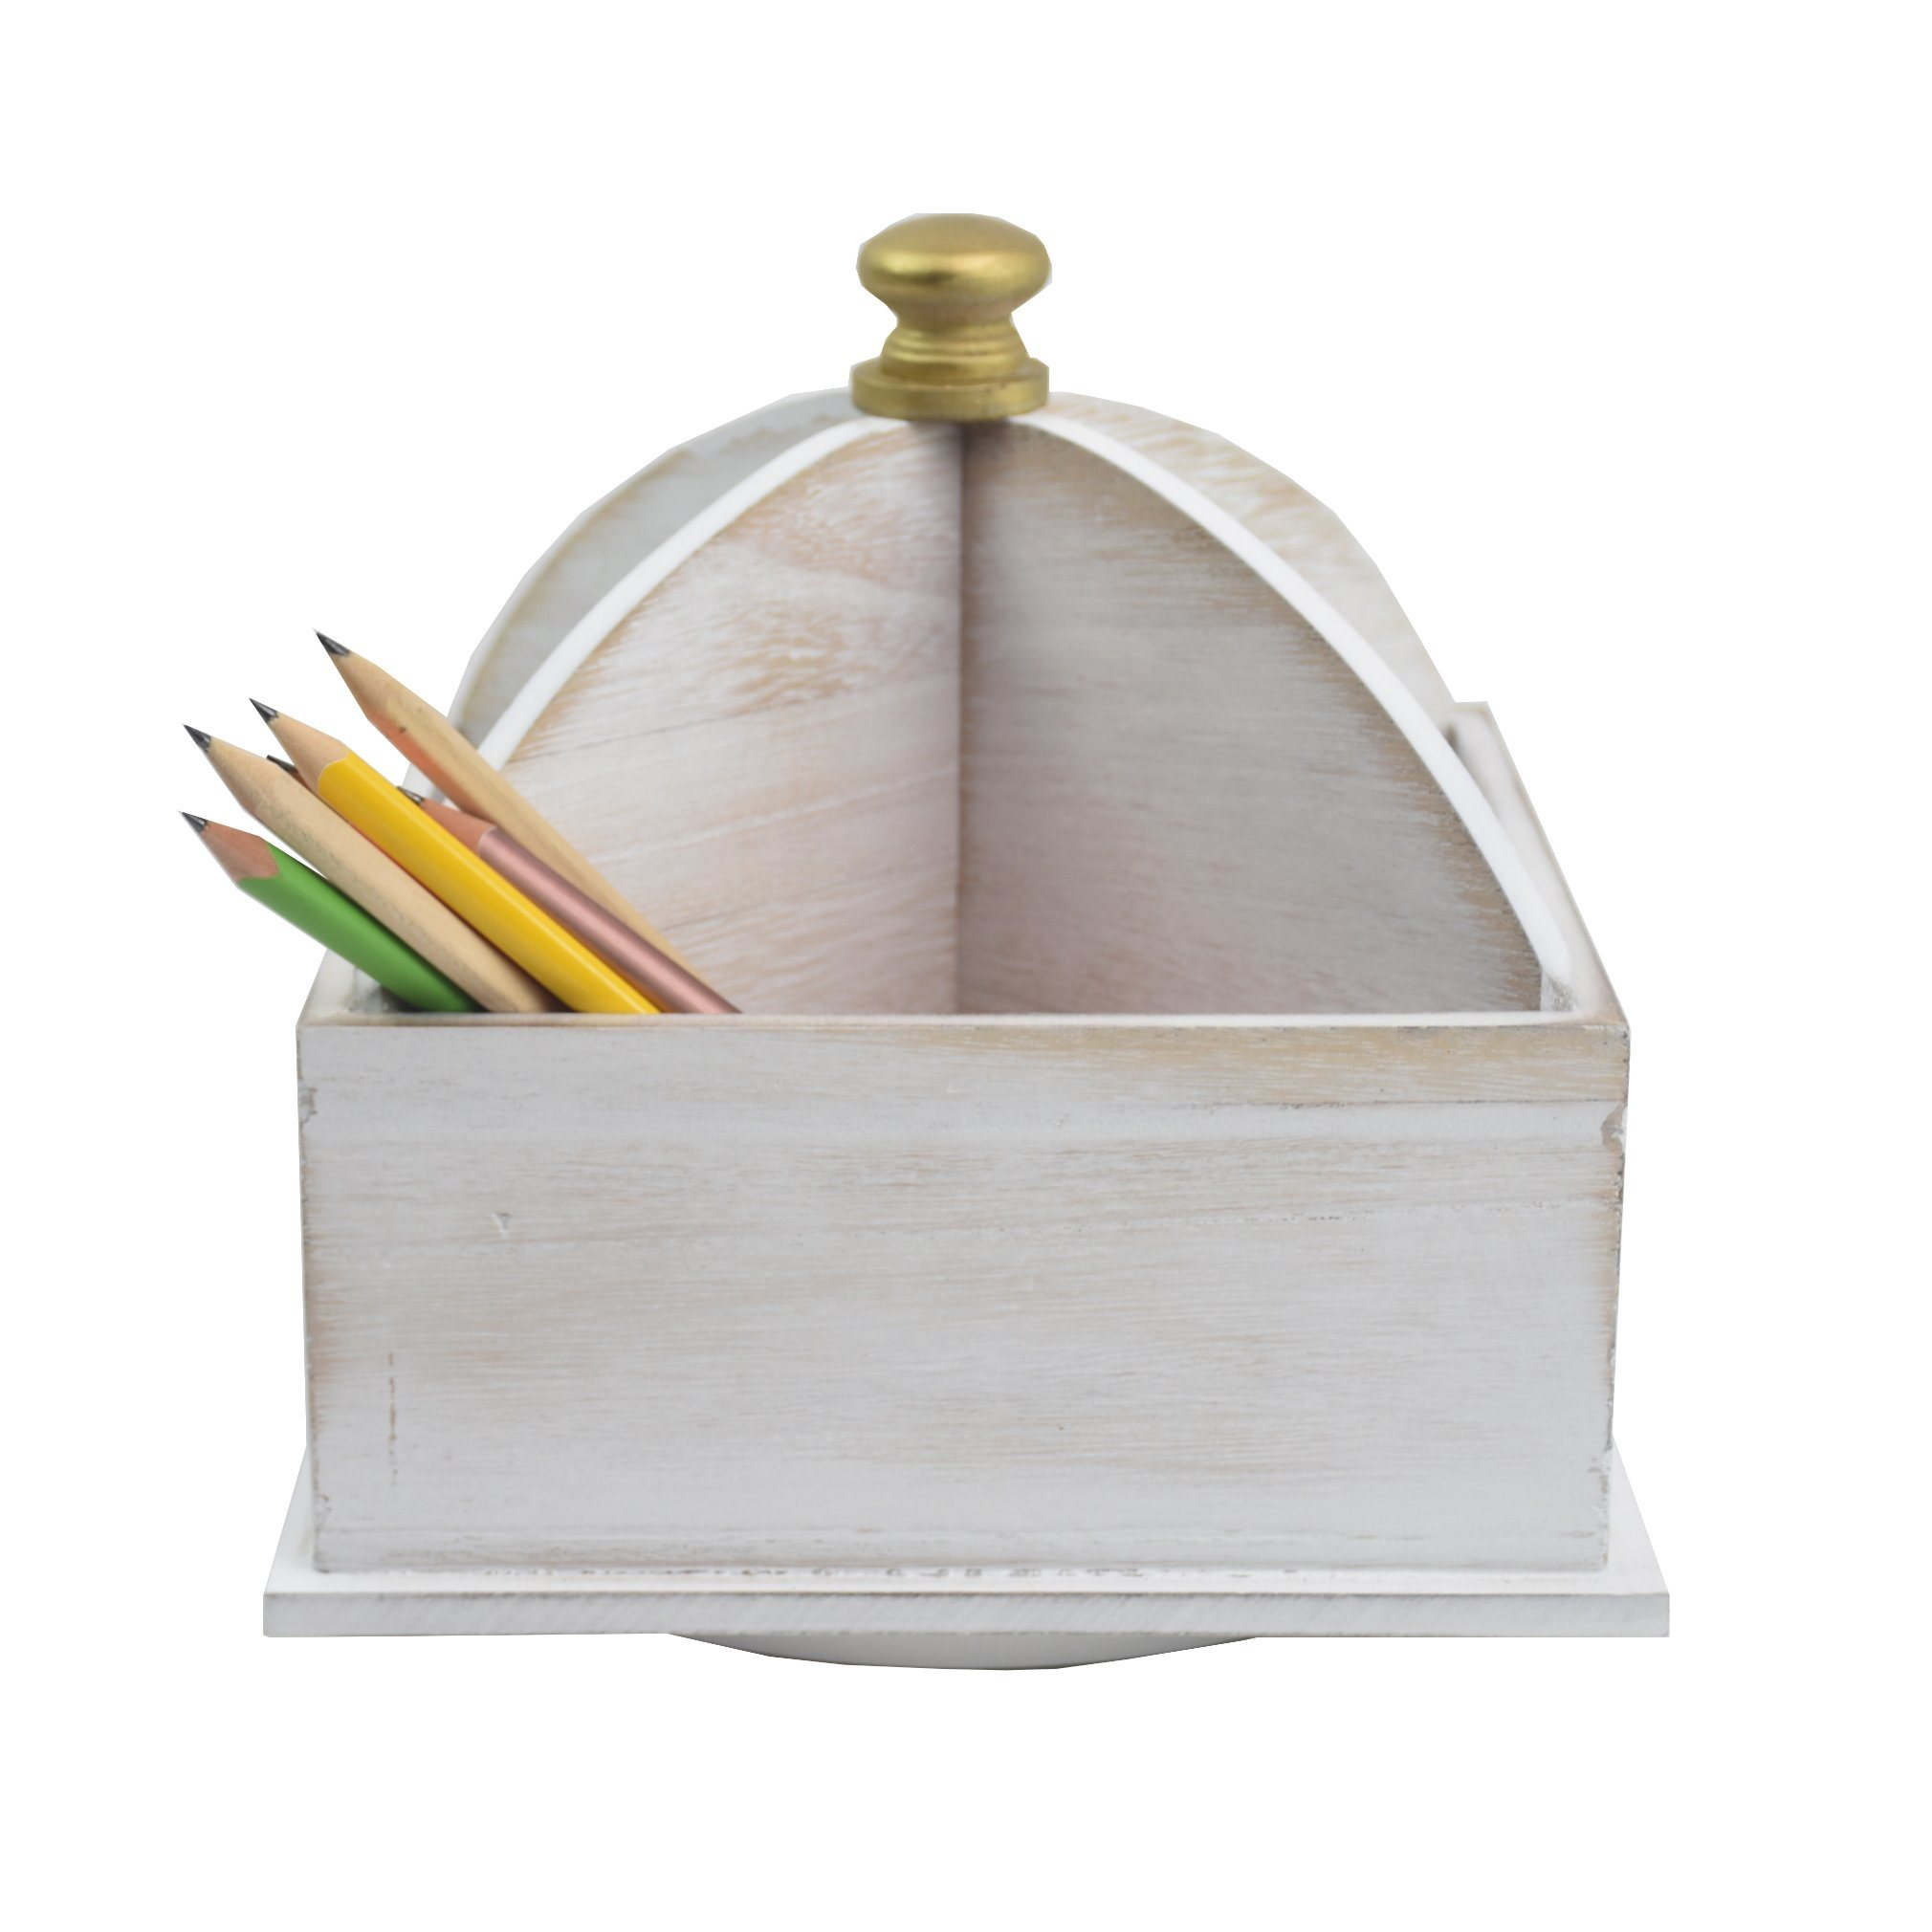 [Hot Item] New Pencil and Pen Holder Office Desk Wooden Storage